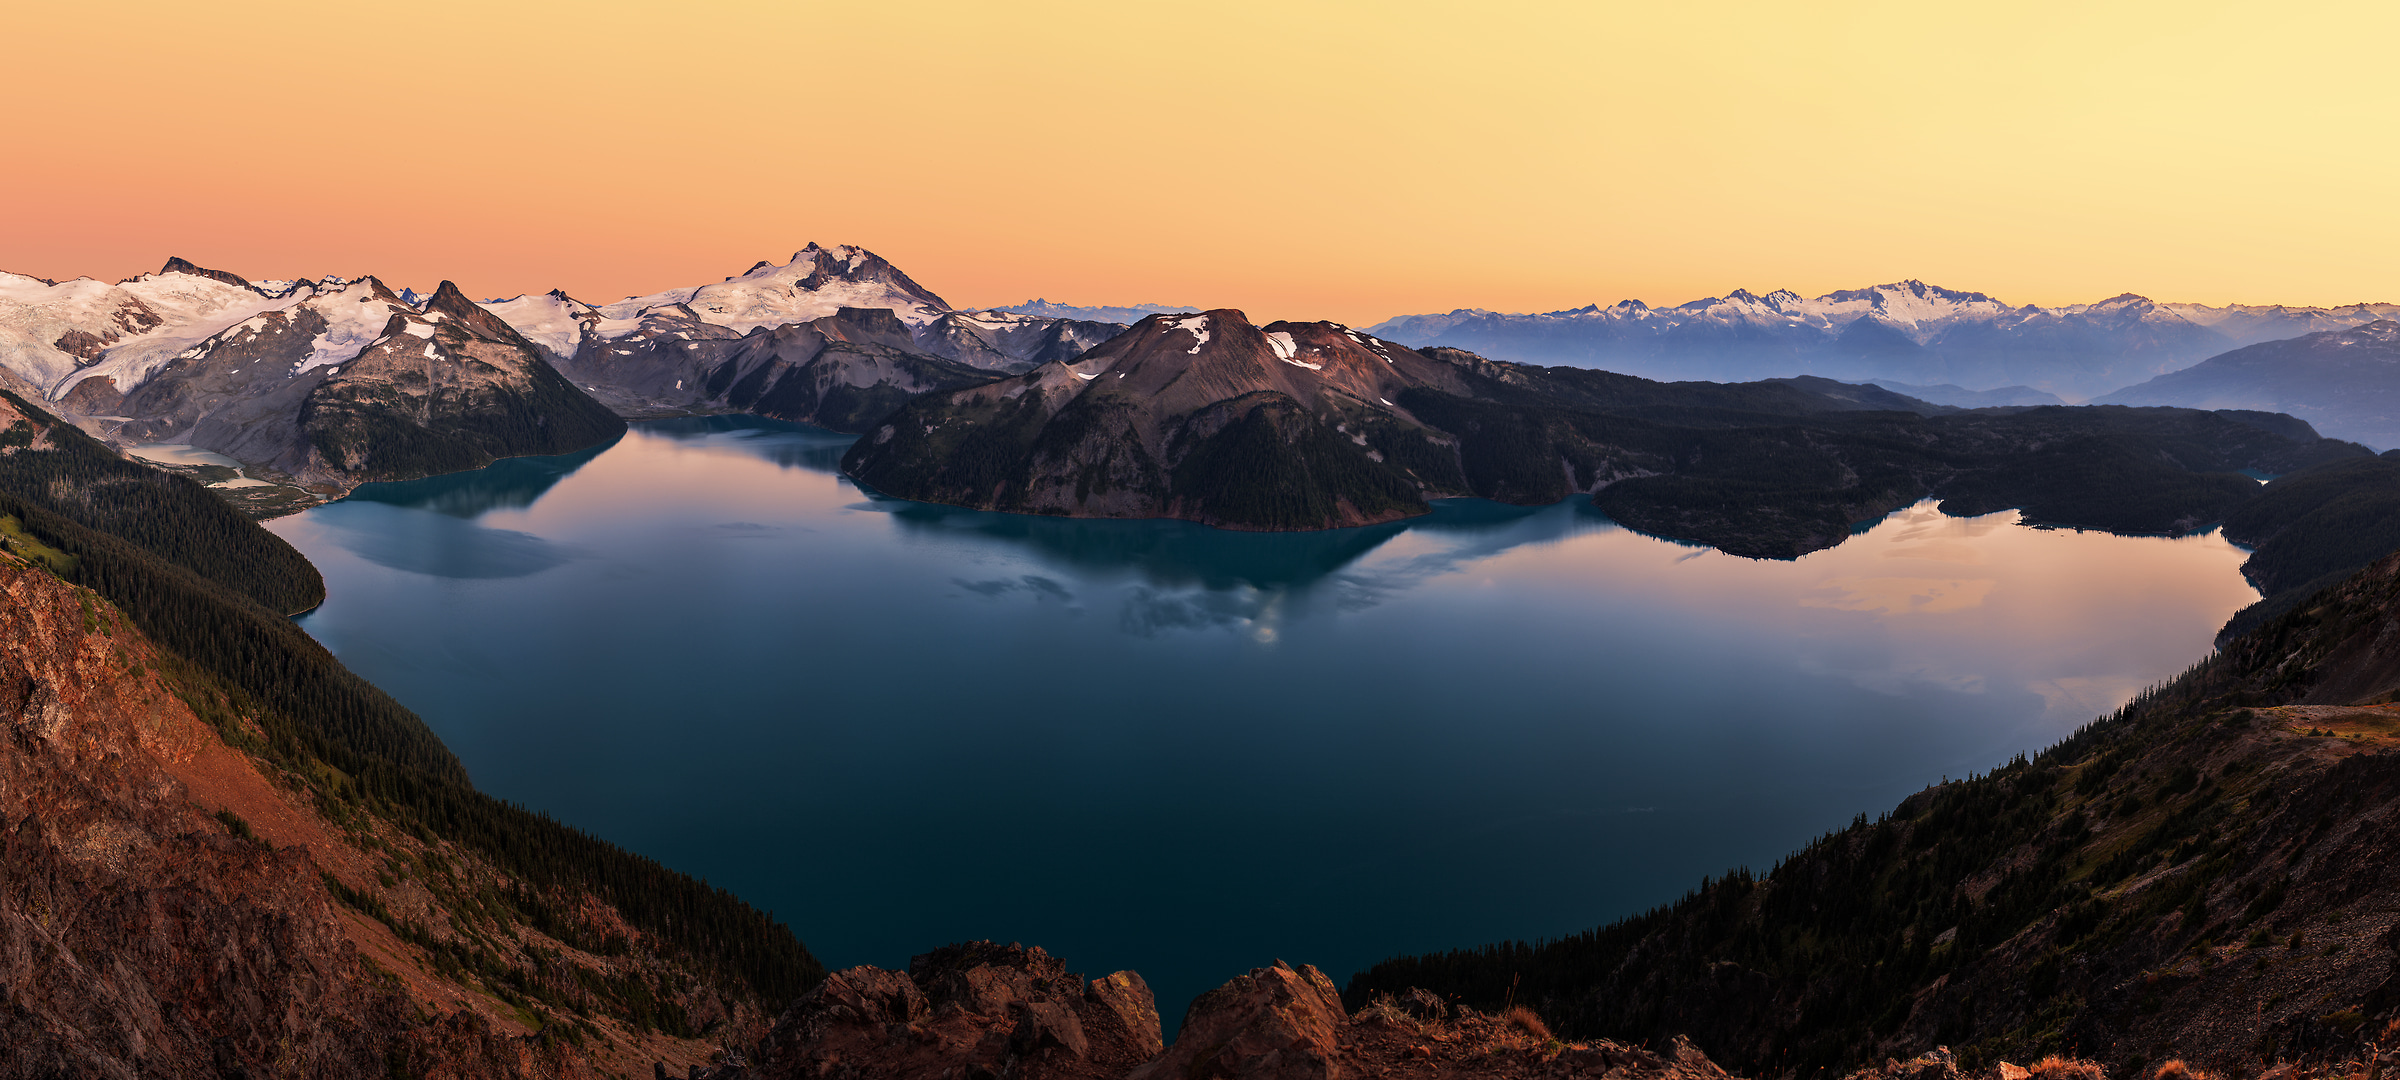 315 megapixels! A very high resolution, large-format VAST photo print of mountains, lakes, and Garibaldi Lake; fine art landscape photo created by Chris Collacott in Garibaldi Provincial Park, British Columbia, Canada